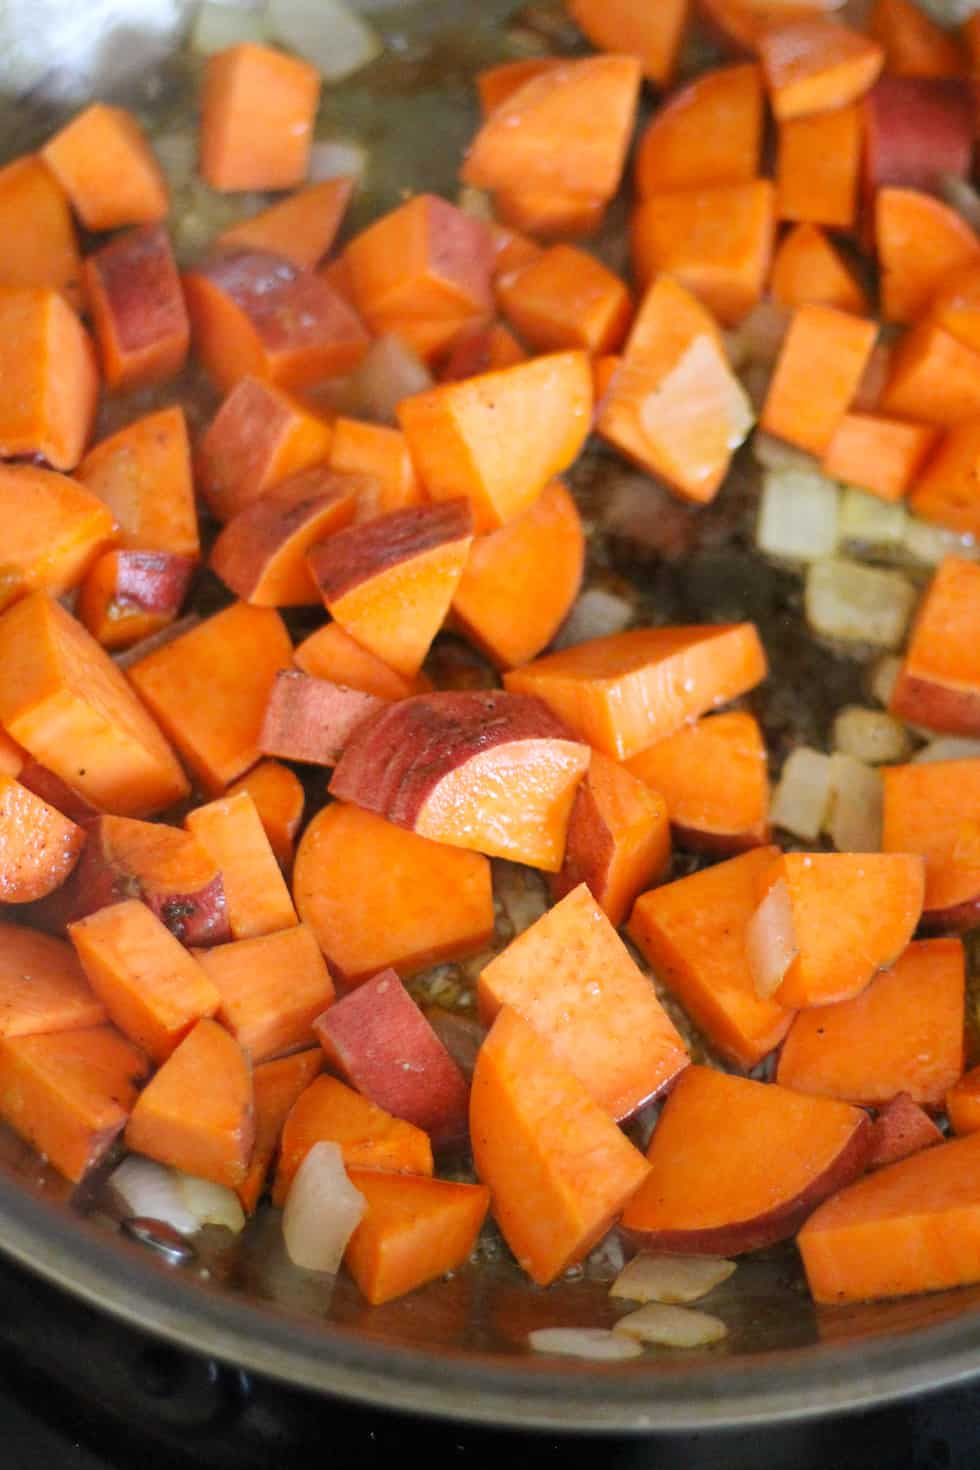 Sweet potatoes in frypan.